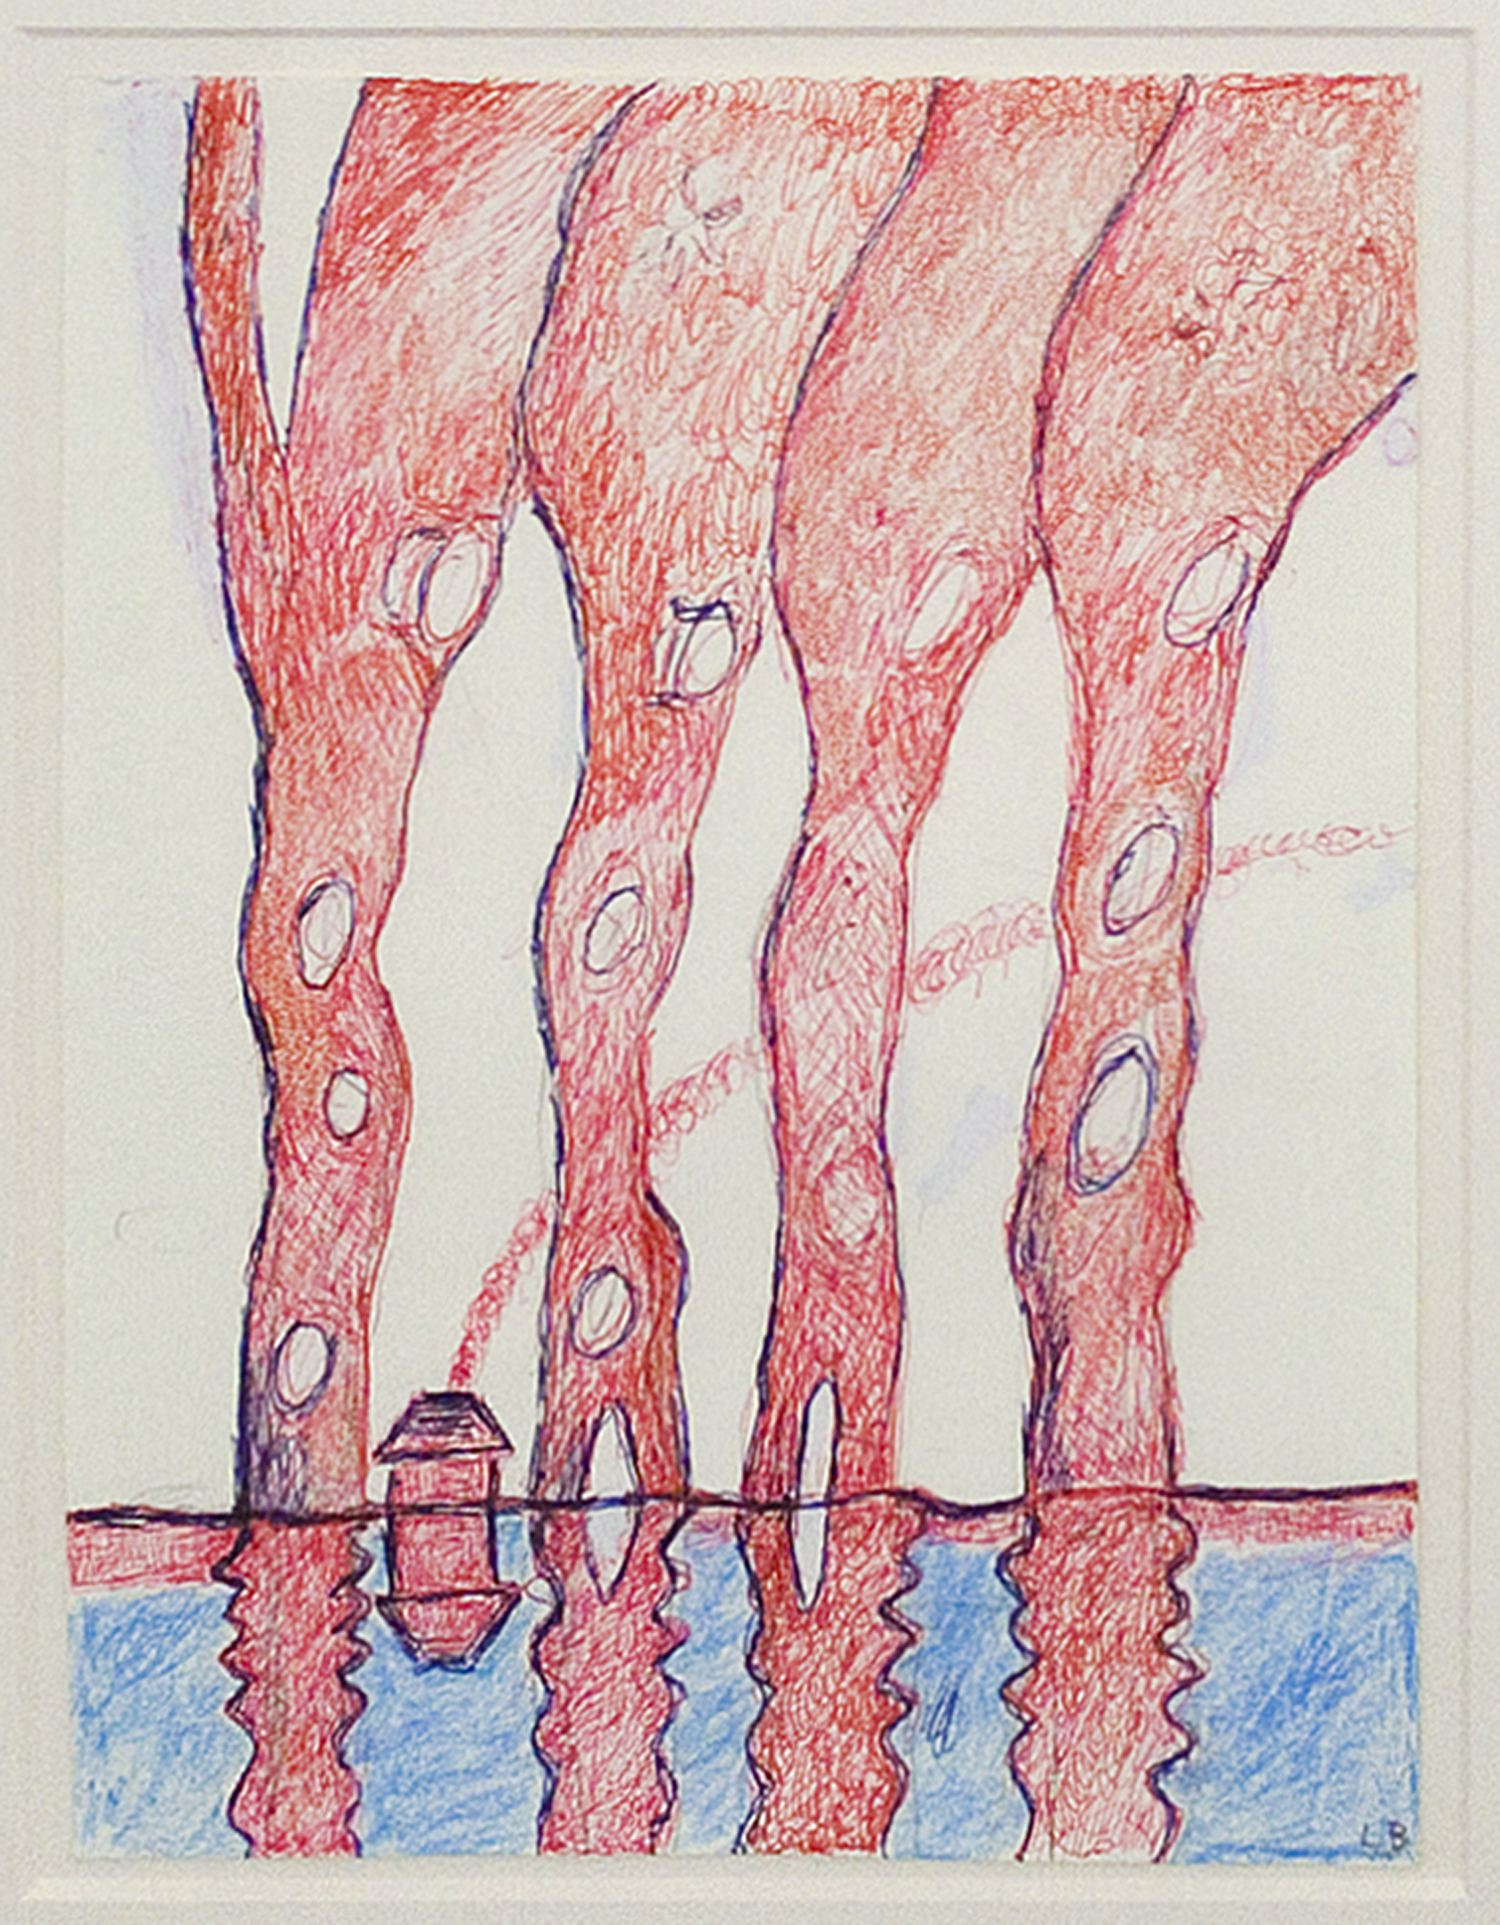 Louise Bourgeois Untitled 1997 pen and crayon on paper 11 5/8 x 9 inches